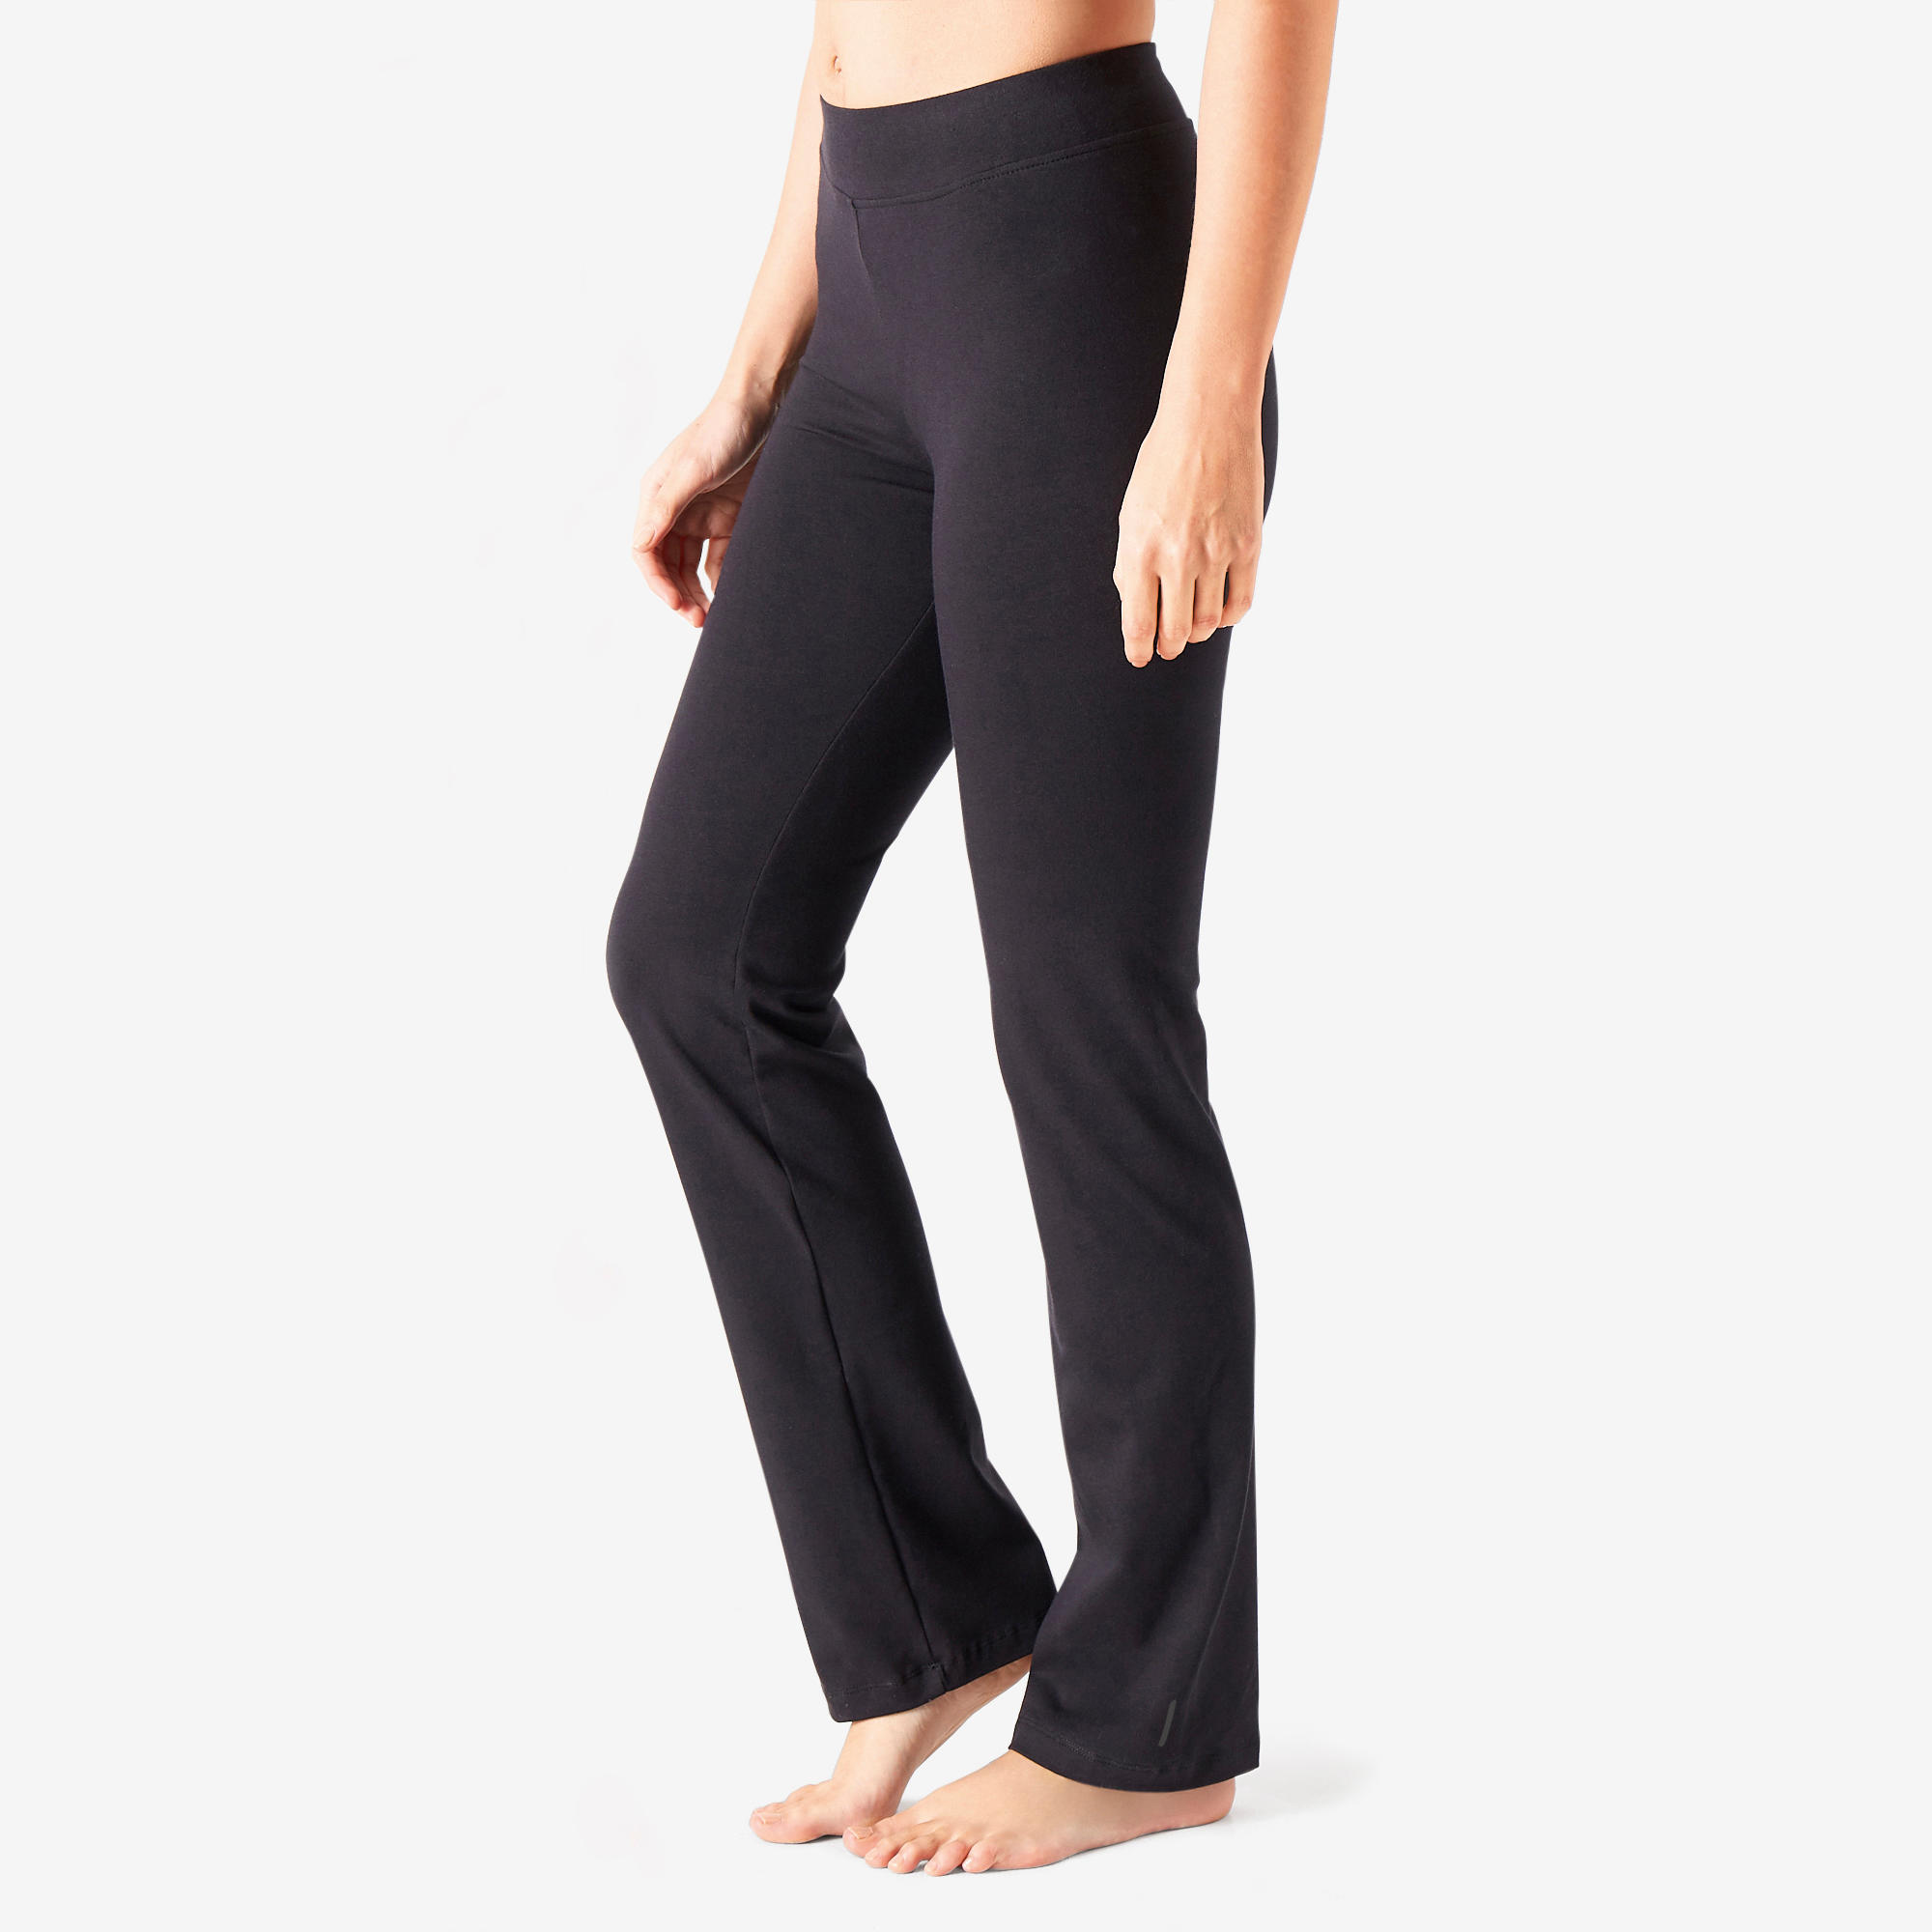 Pantalon FIT+500 pilates damă